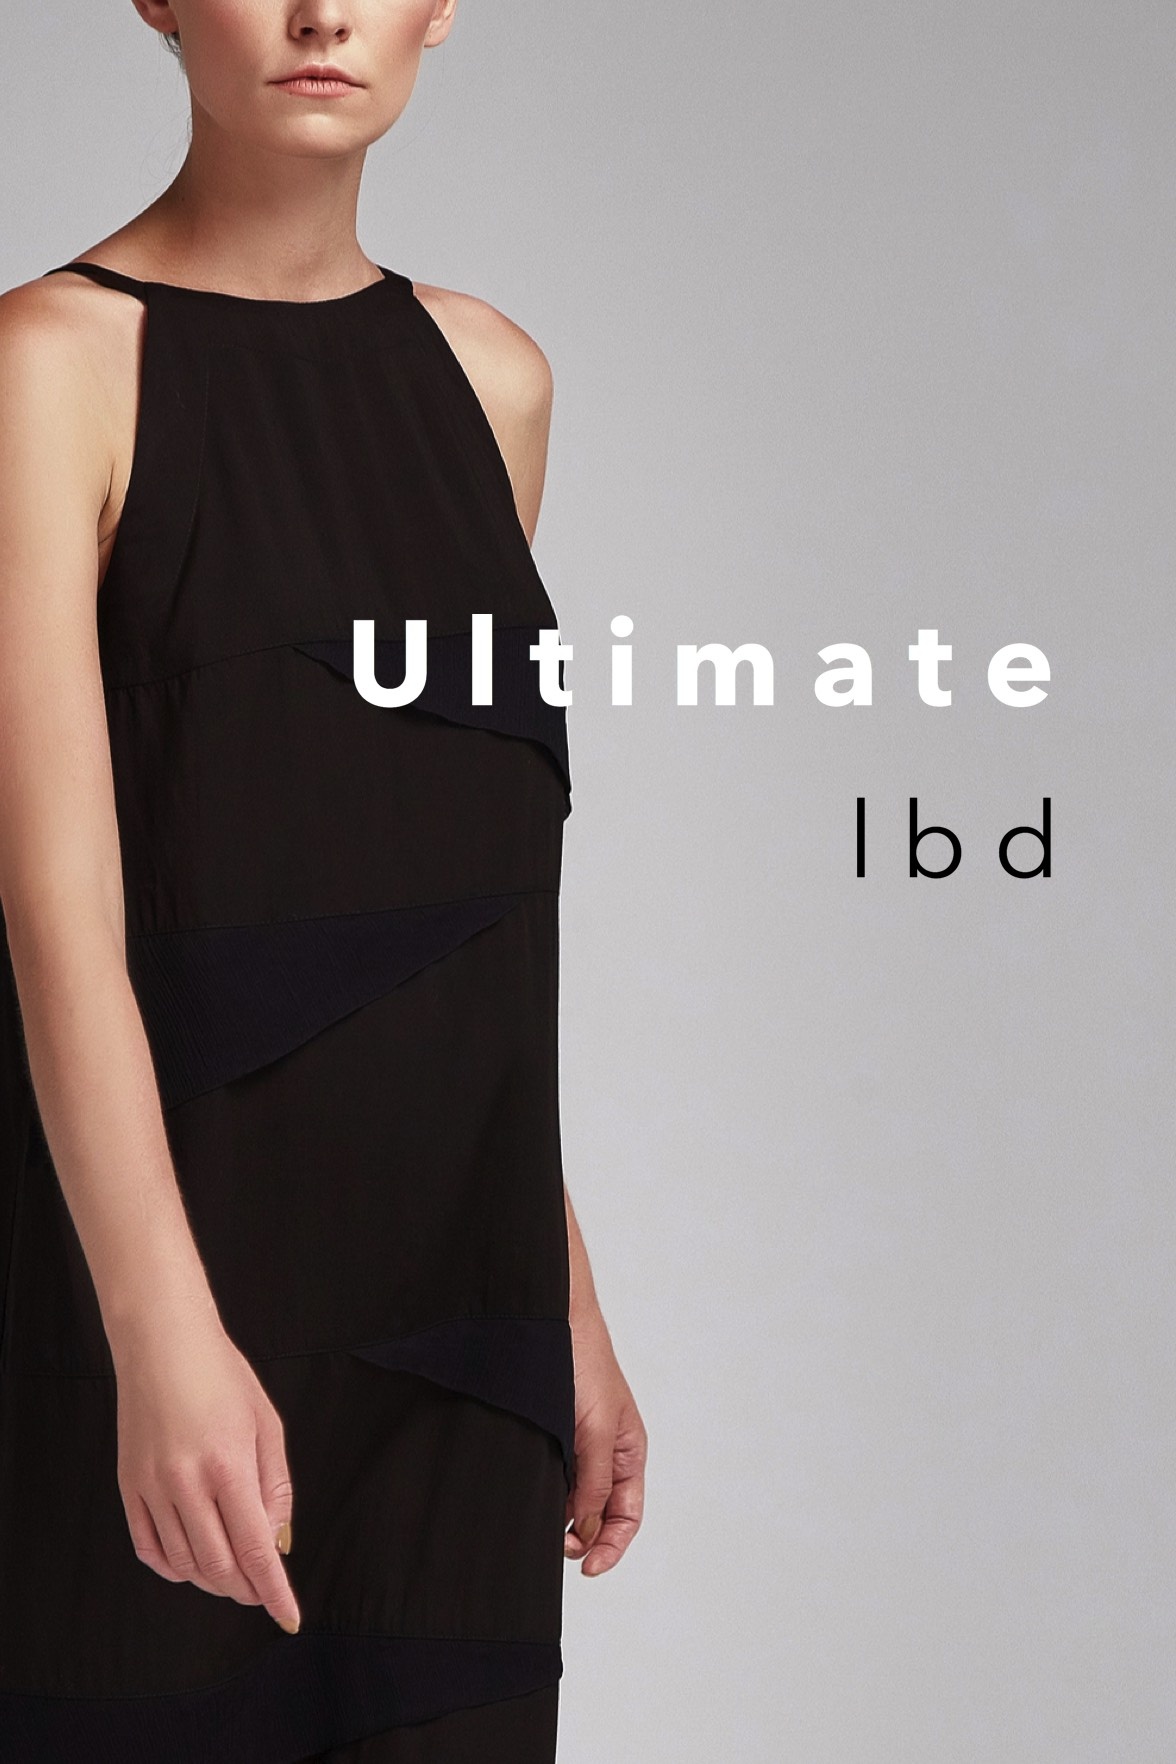 The Ultimate LBD